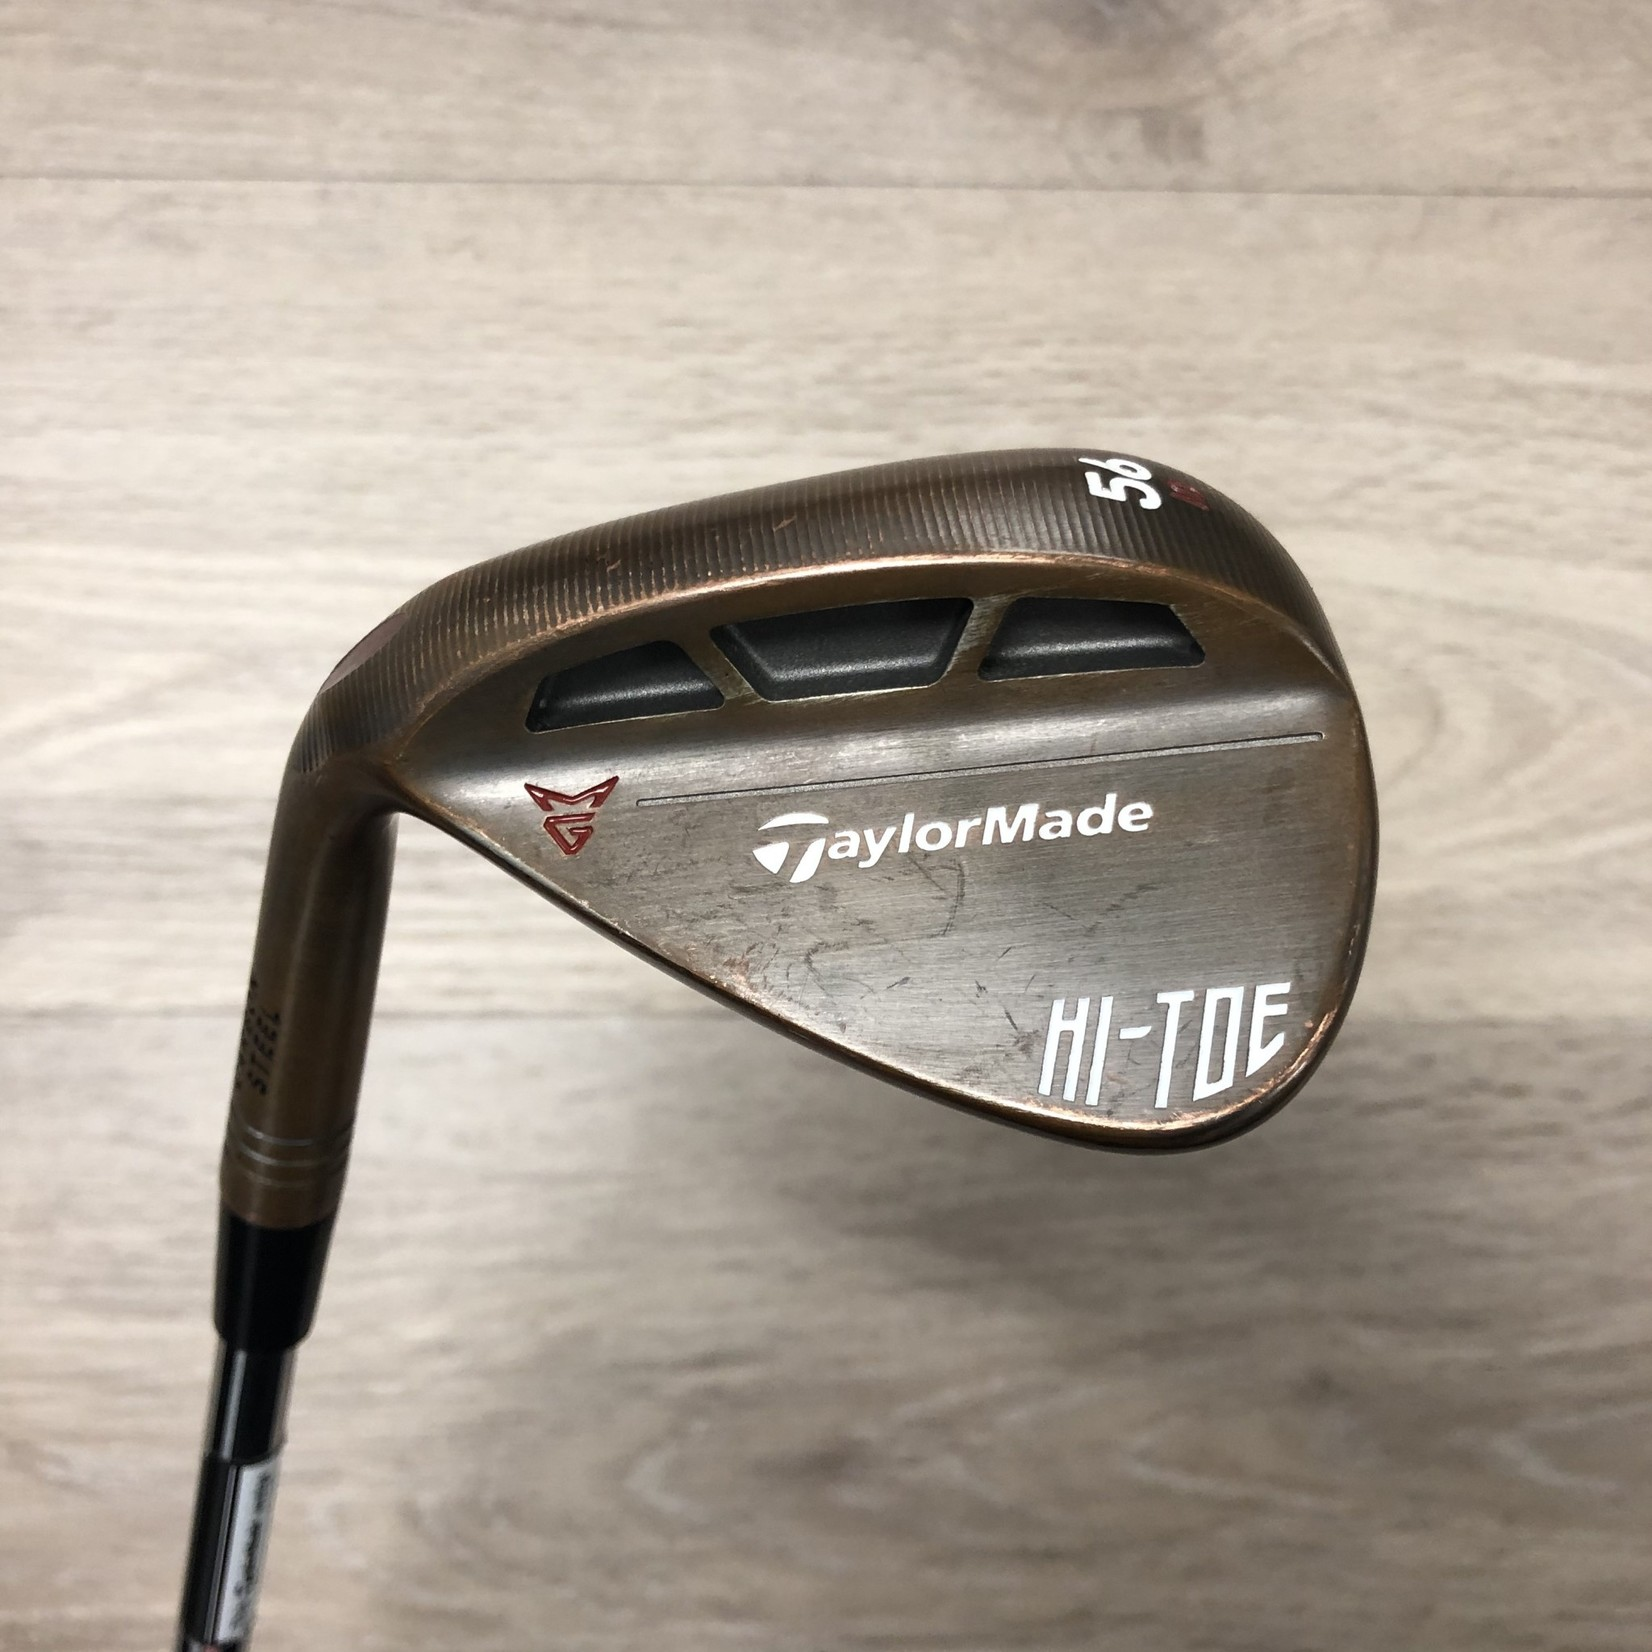 TaylorMade Taylormade Milled Grind Hi-Toe Wedge 56* 10* (LH)